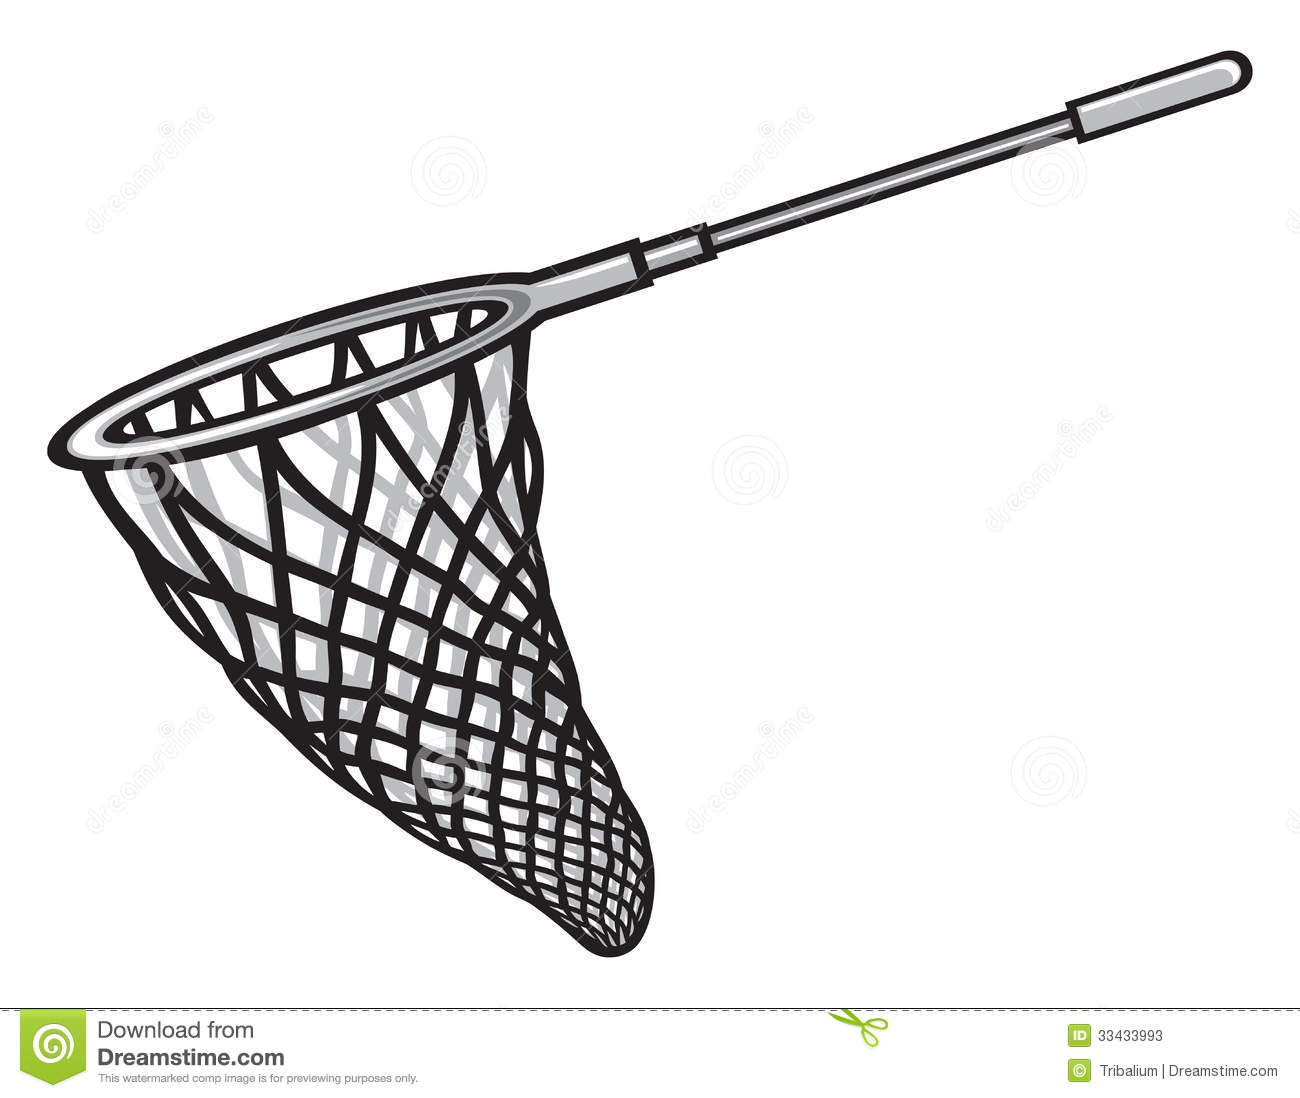 Fish Net clipart Clipart Images Fishing net%20clipart Clipart